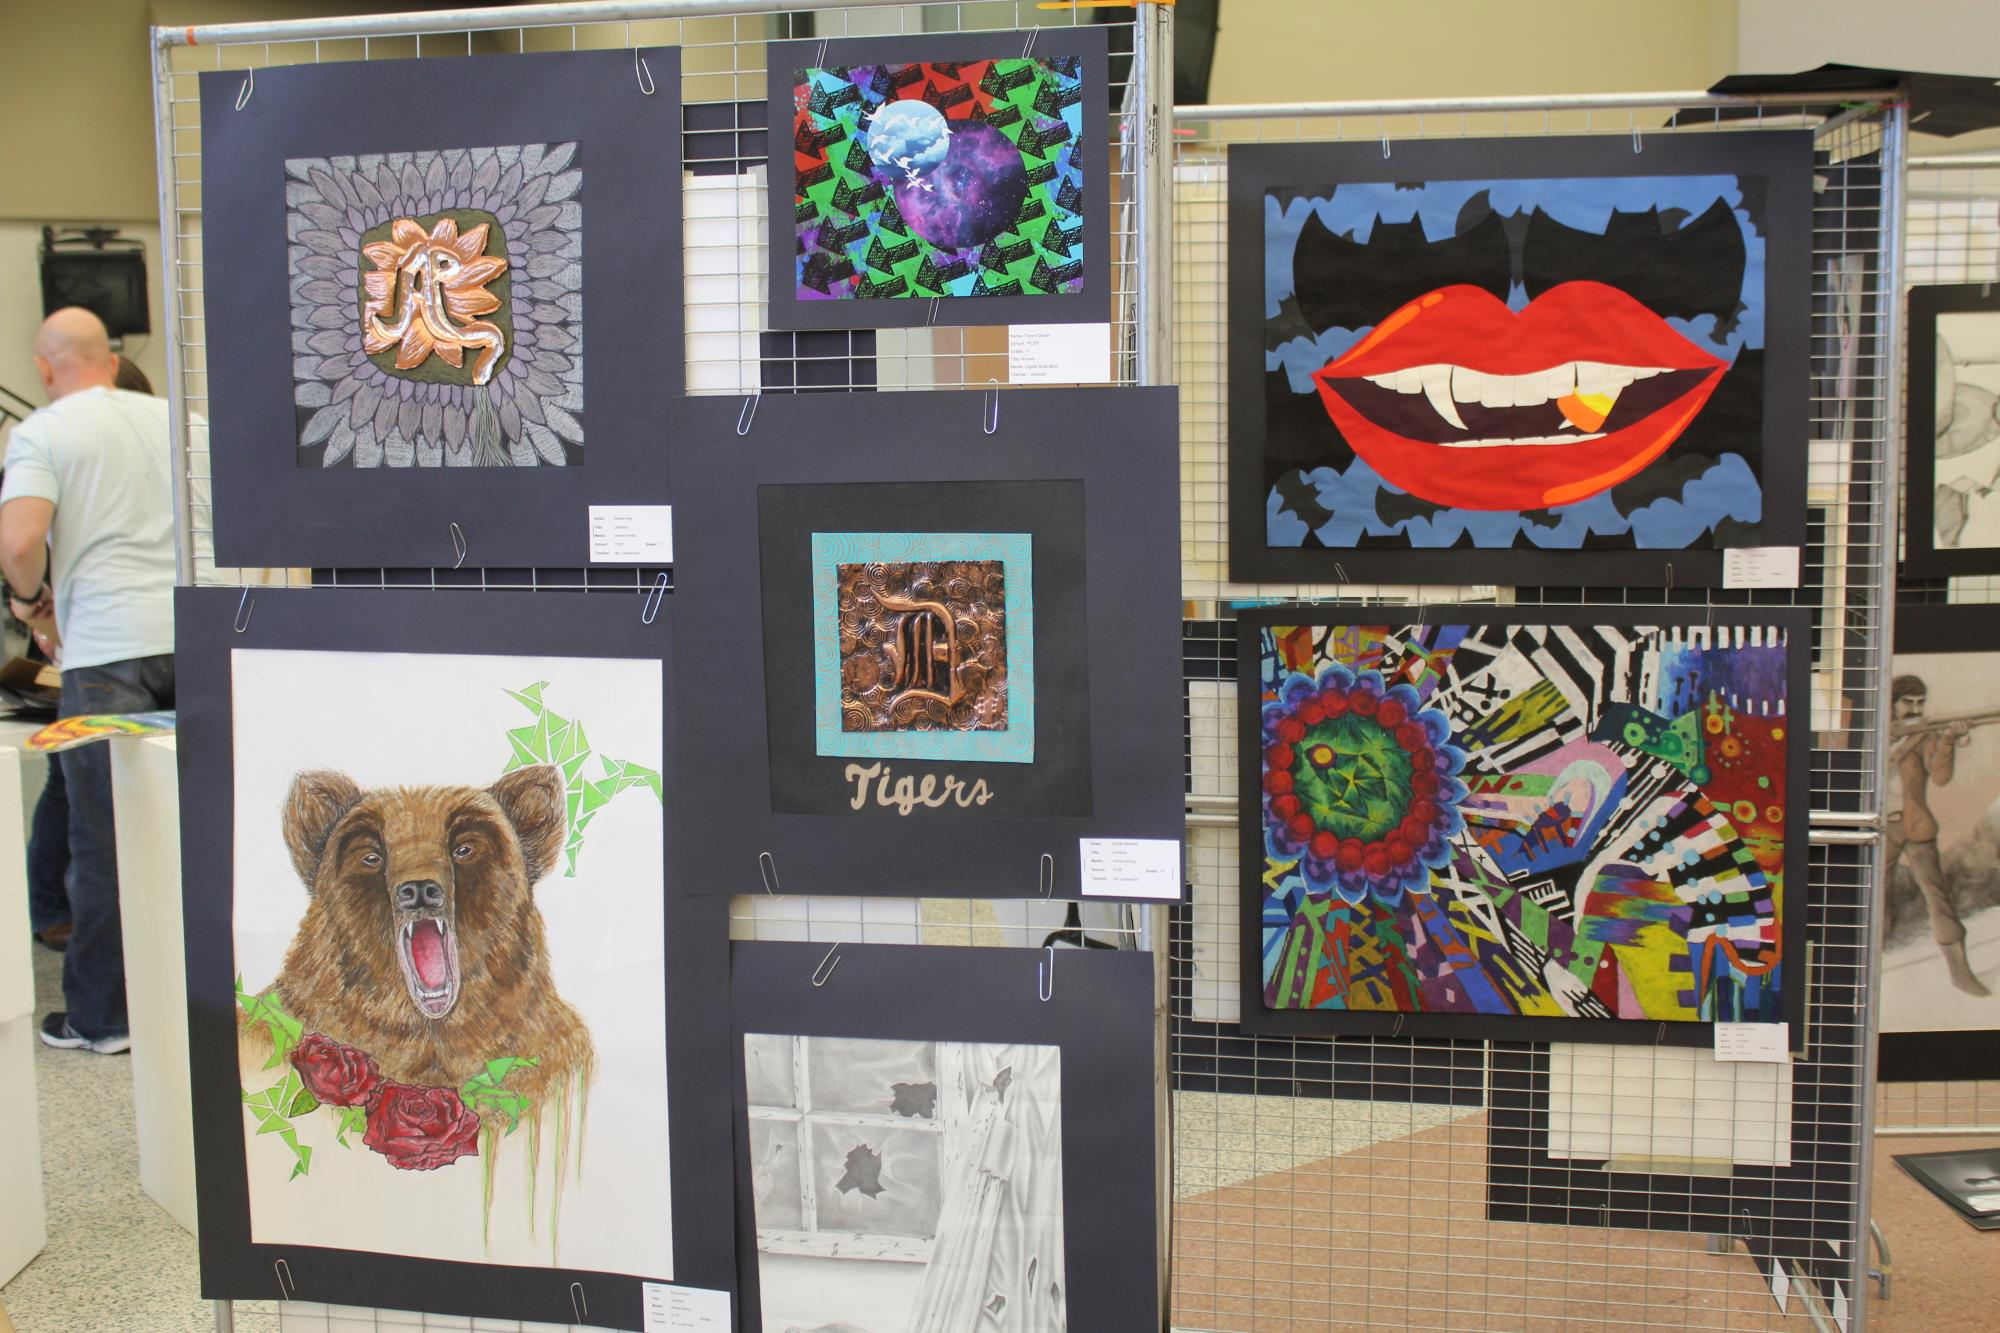 P-CCS Art Show Saturday, May 20 from 11:30 a.m. - 6 p.m. at Plymouth High School